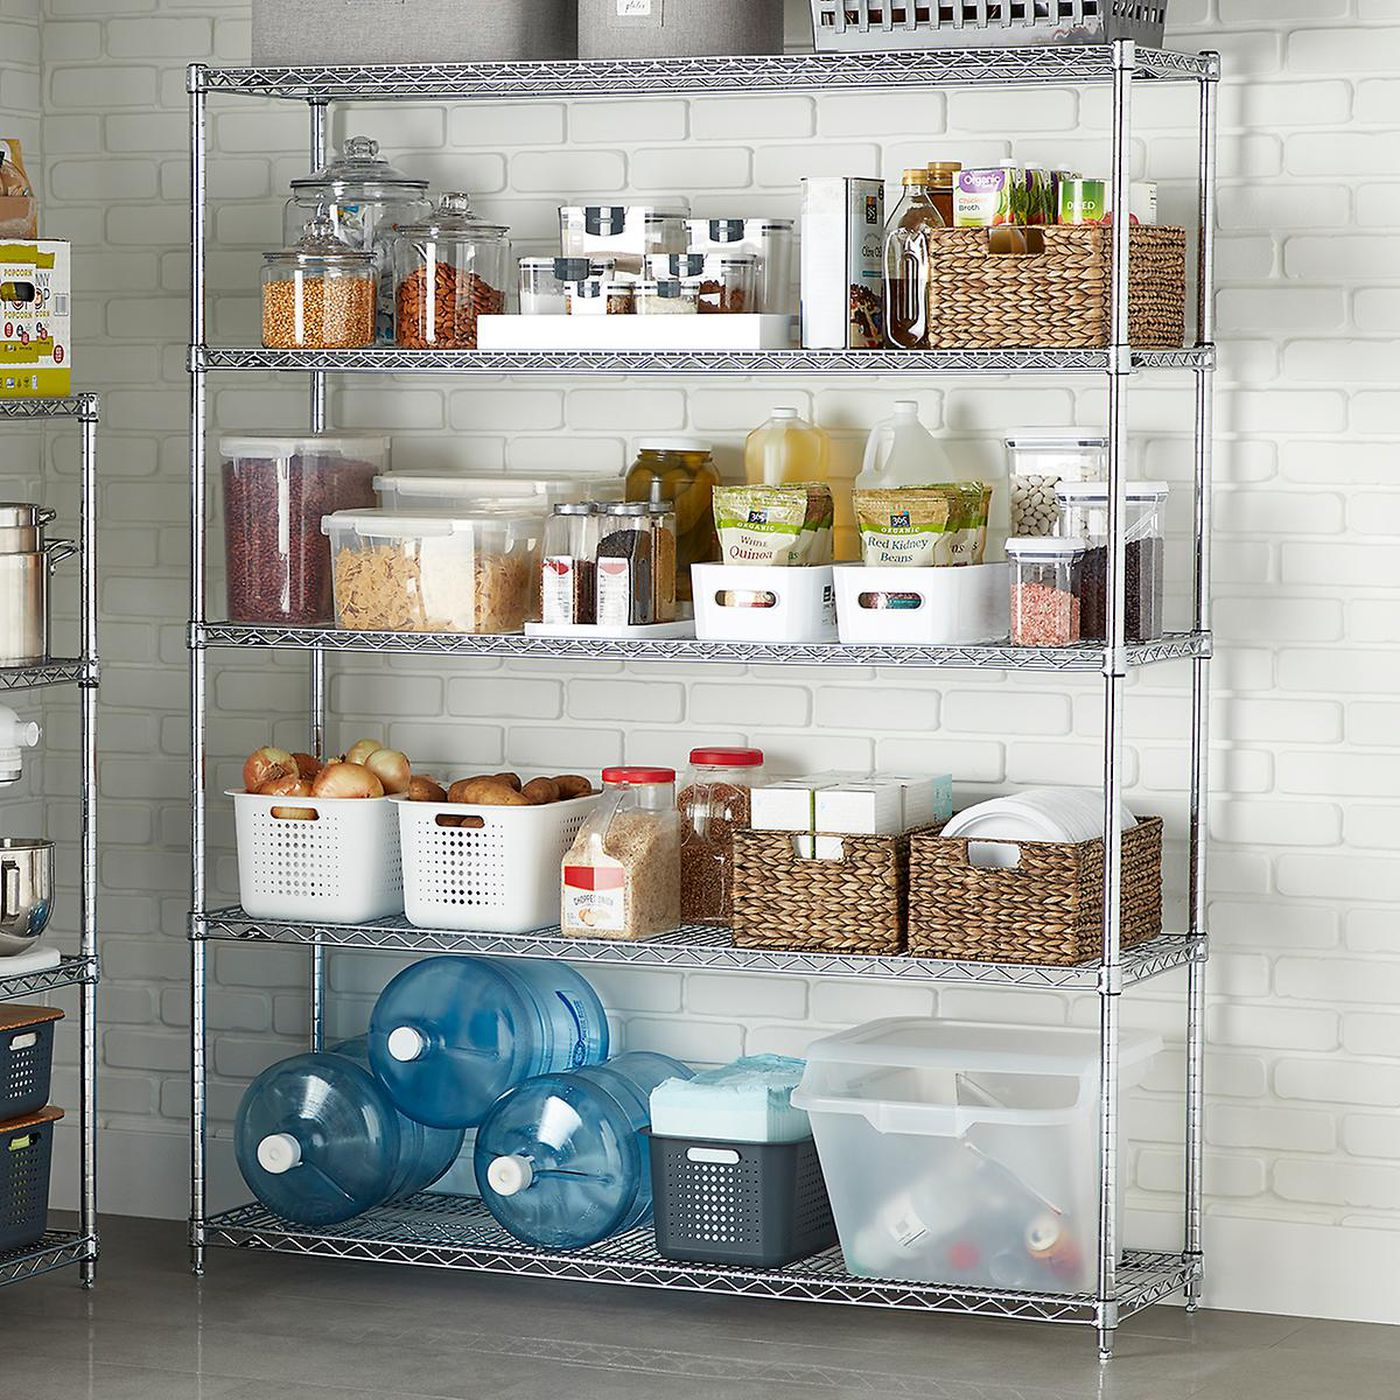 How To Use Wire Shelves In Your Kitchen Like A Restaurant Pro Eater